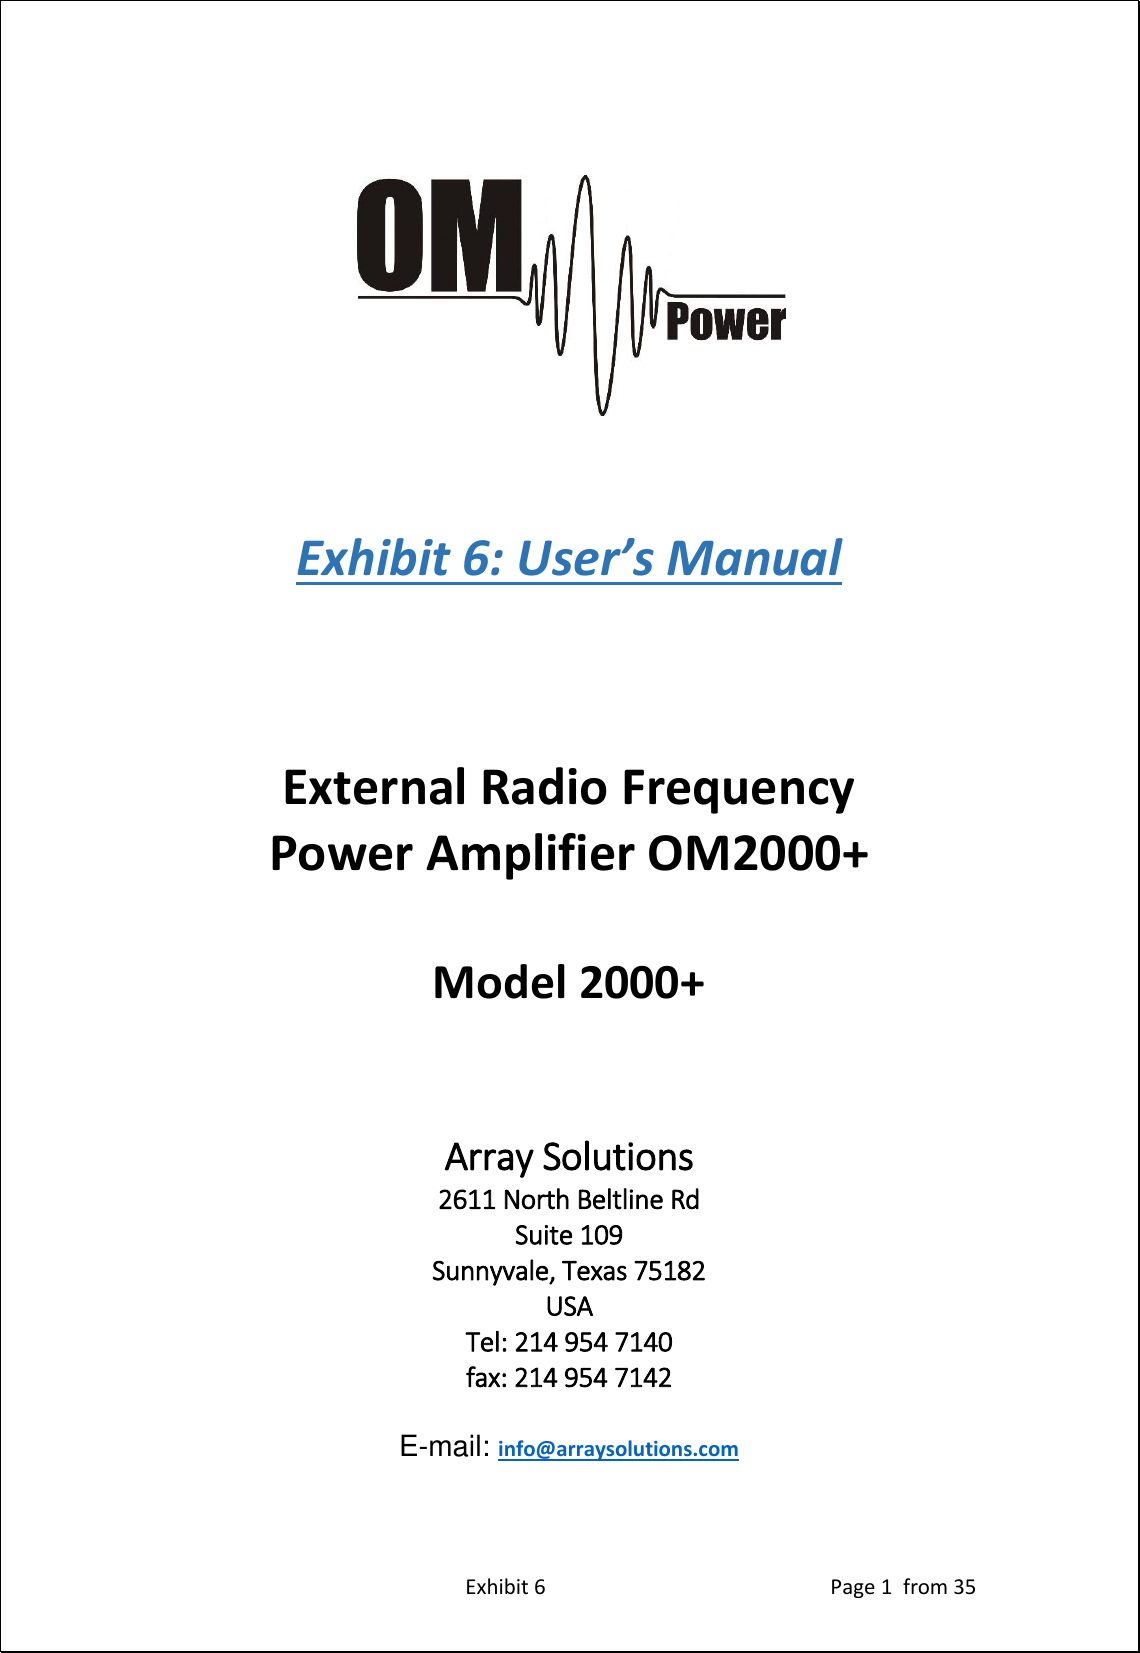 Array Solutions X8nom2000 Amateur Radio Service Frequency Amplifier Linear Hf User Manual Om2000